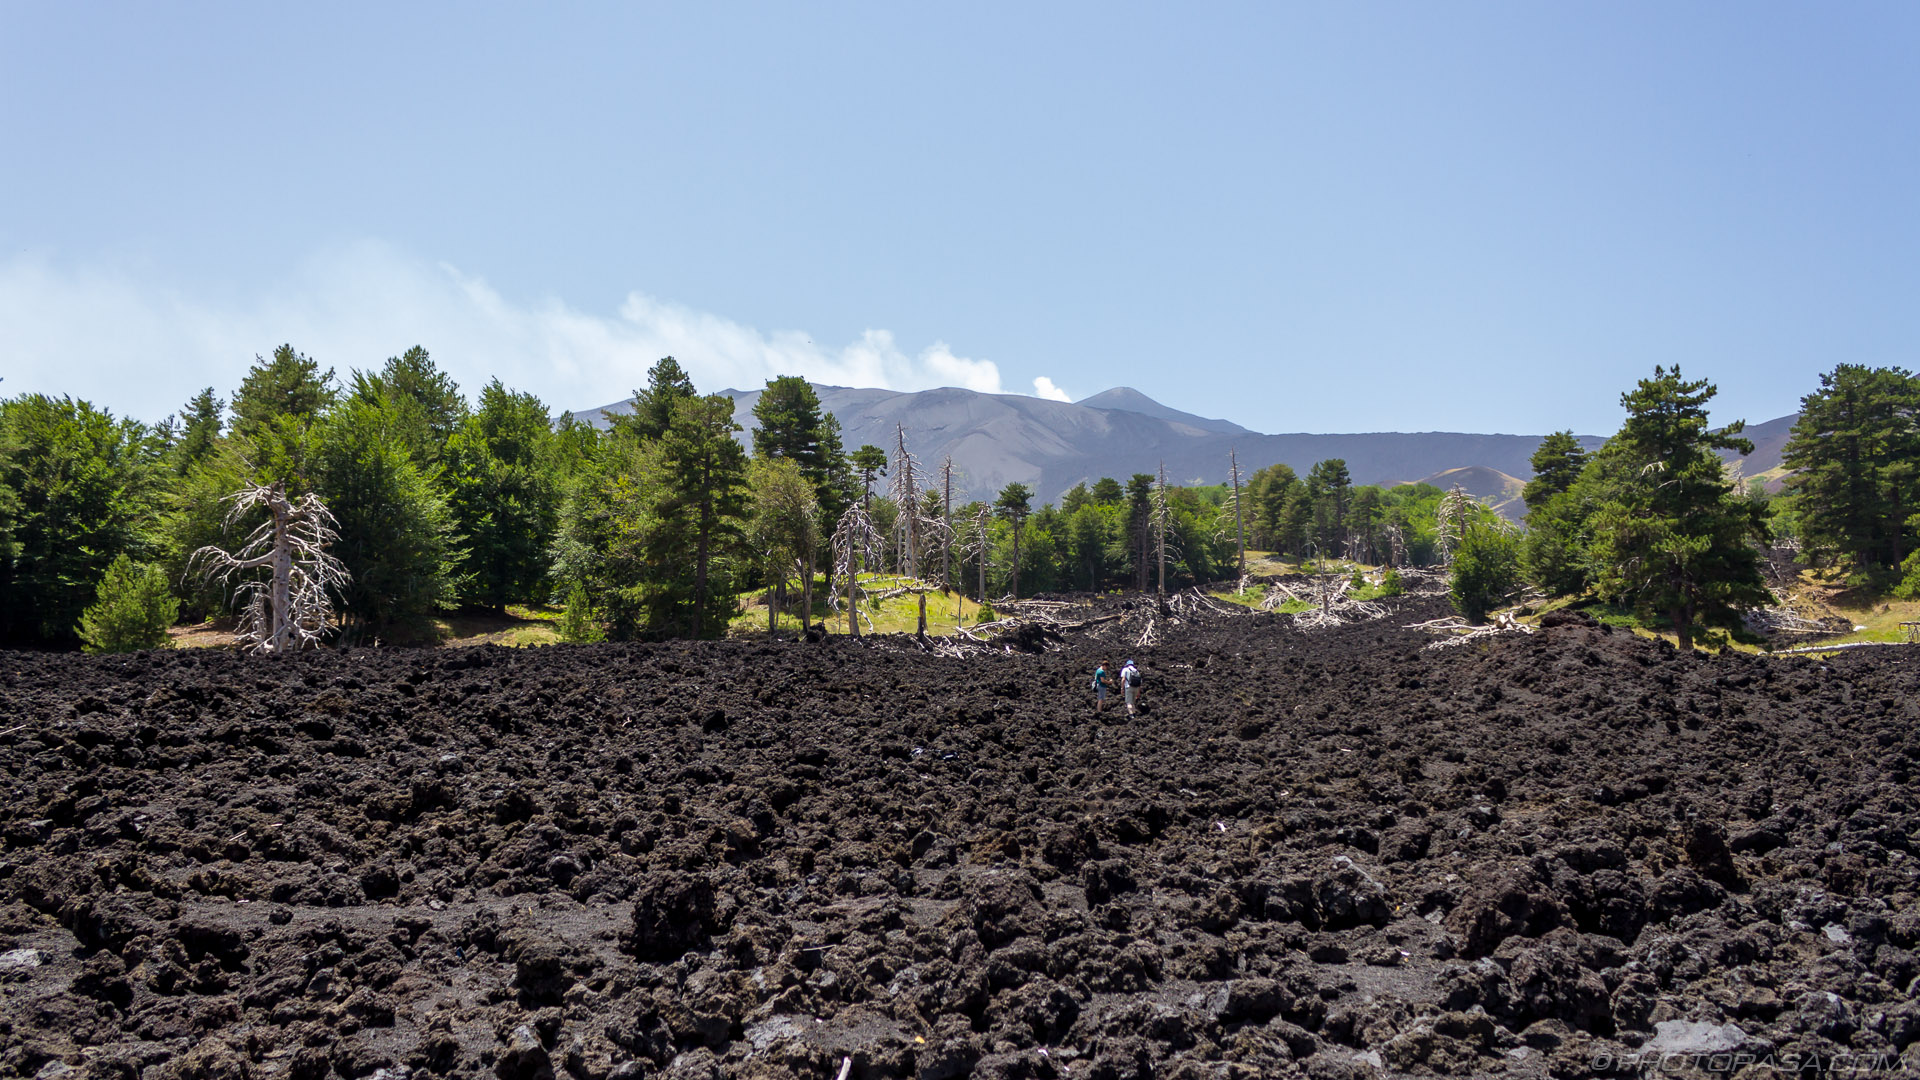 http://photorasa.com/mount-etna/sea-of-lava-rock/